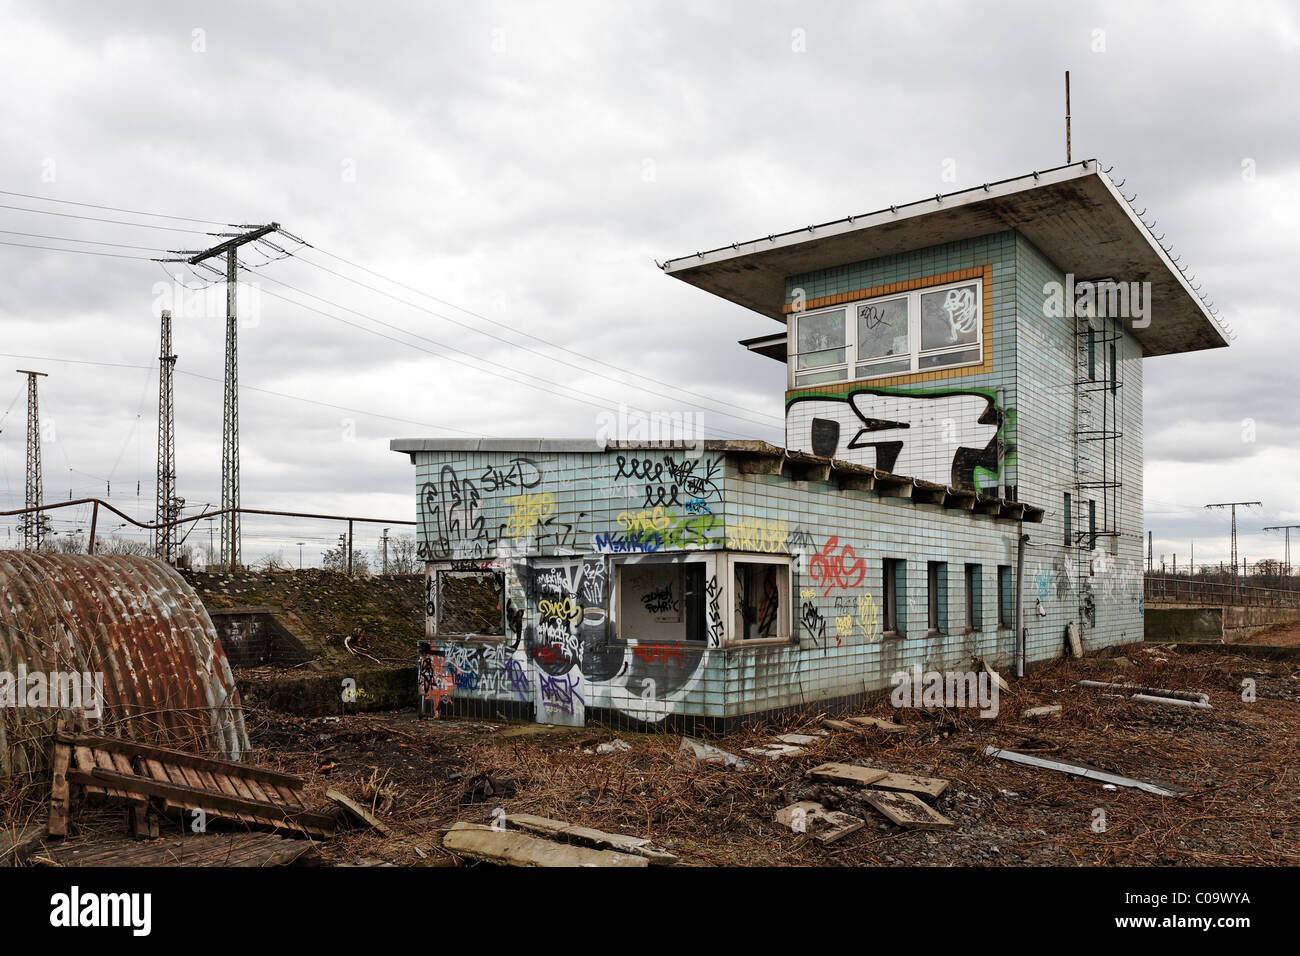 Ruins of a switch tower on the site of a former freight station scheduled for demolition, Duisburg, North Rhine - Stock Image